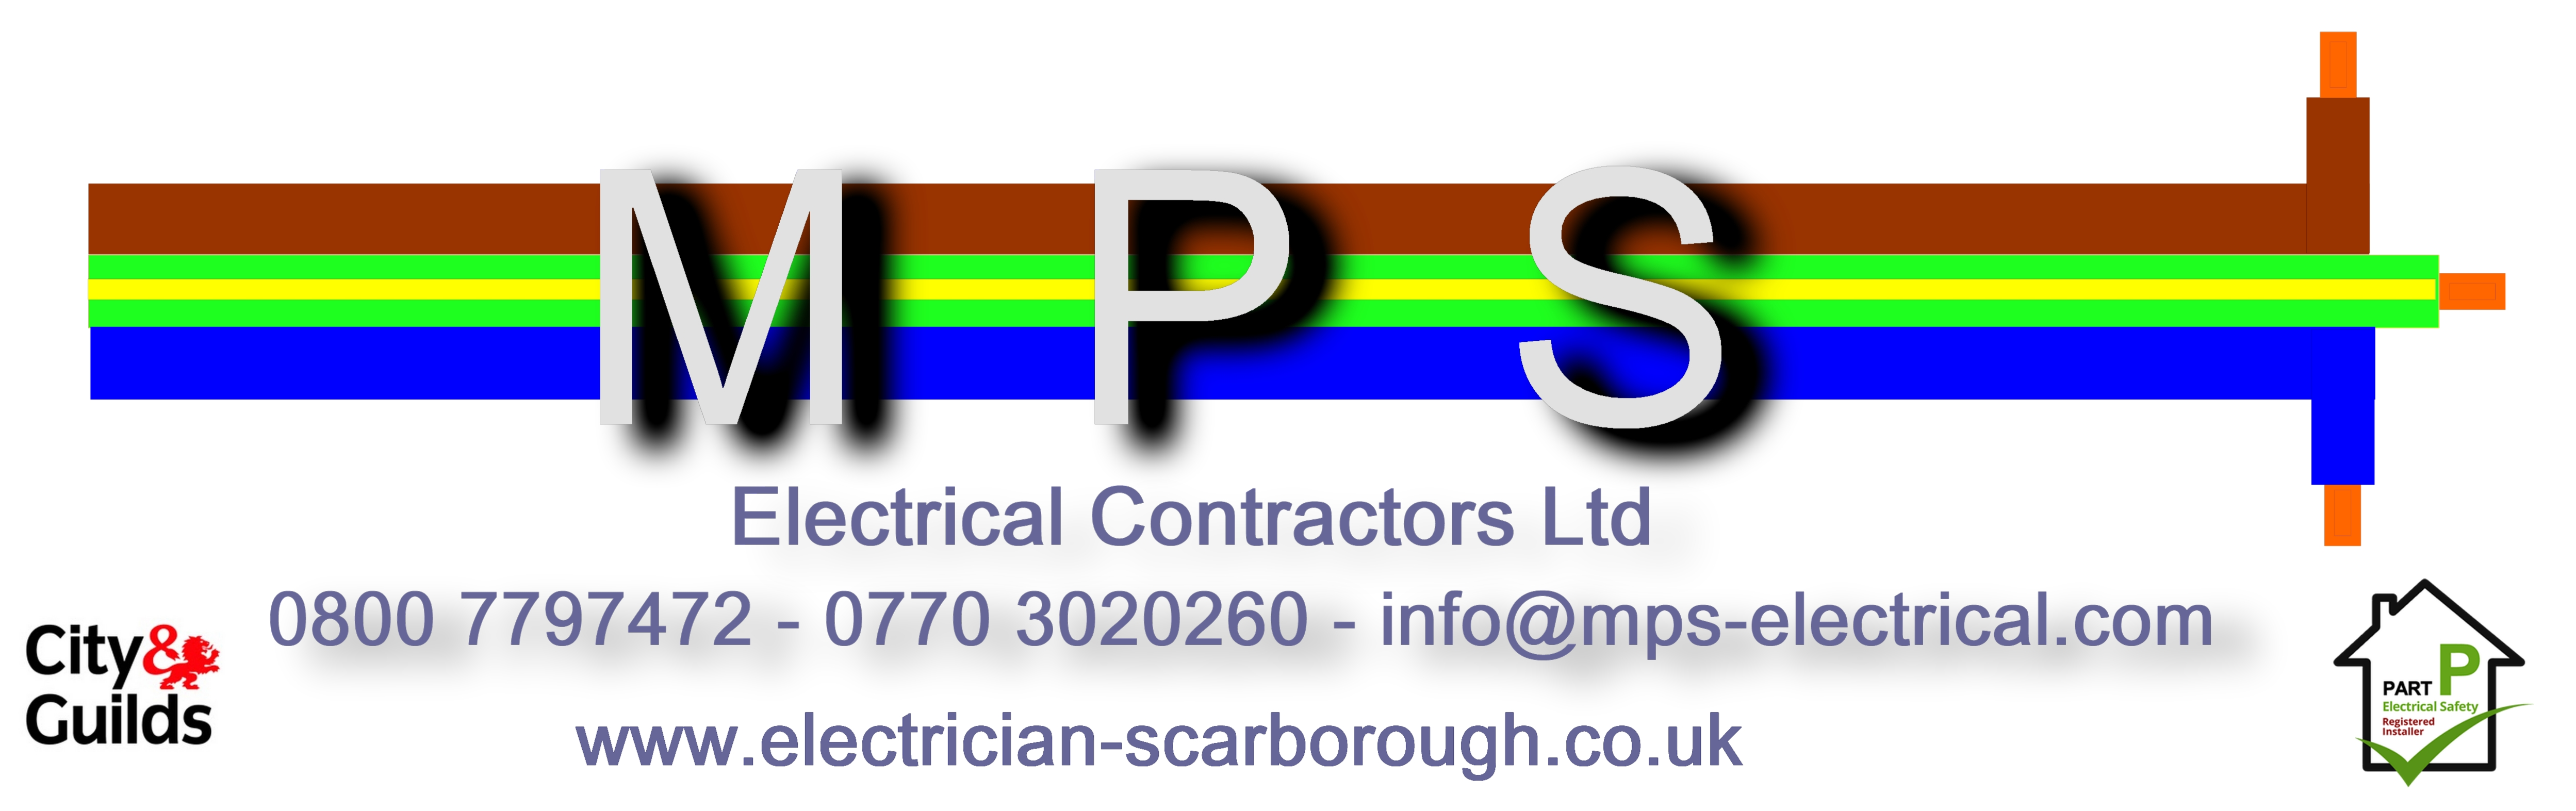 Electrician Scarborough 0800 7797472